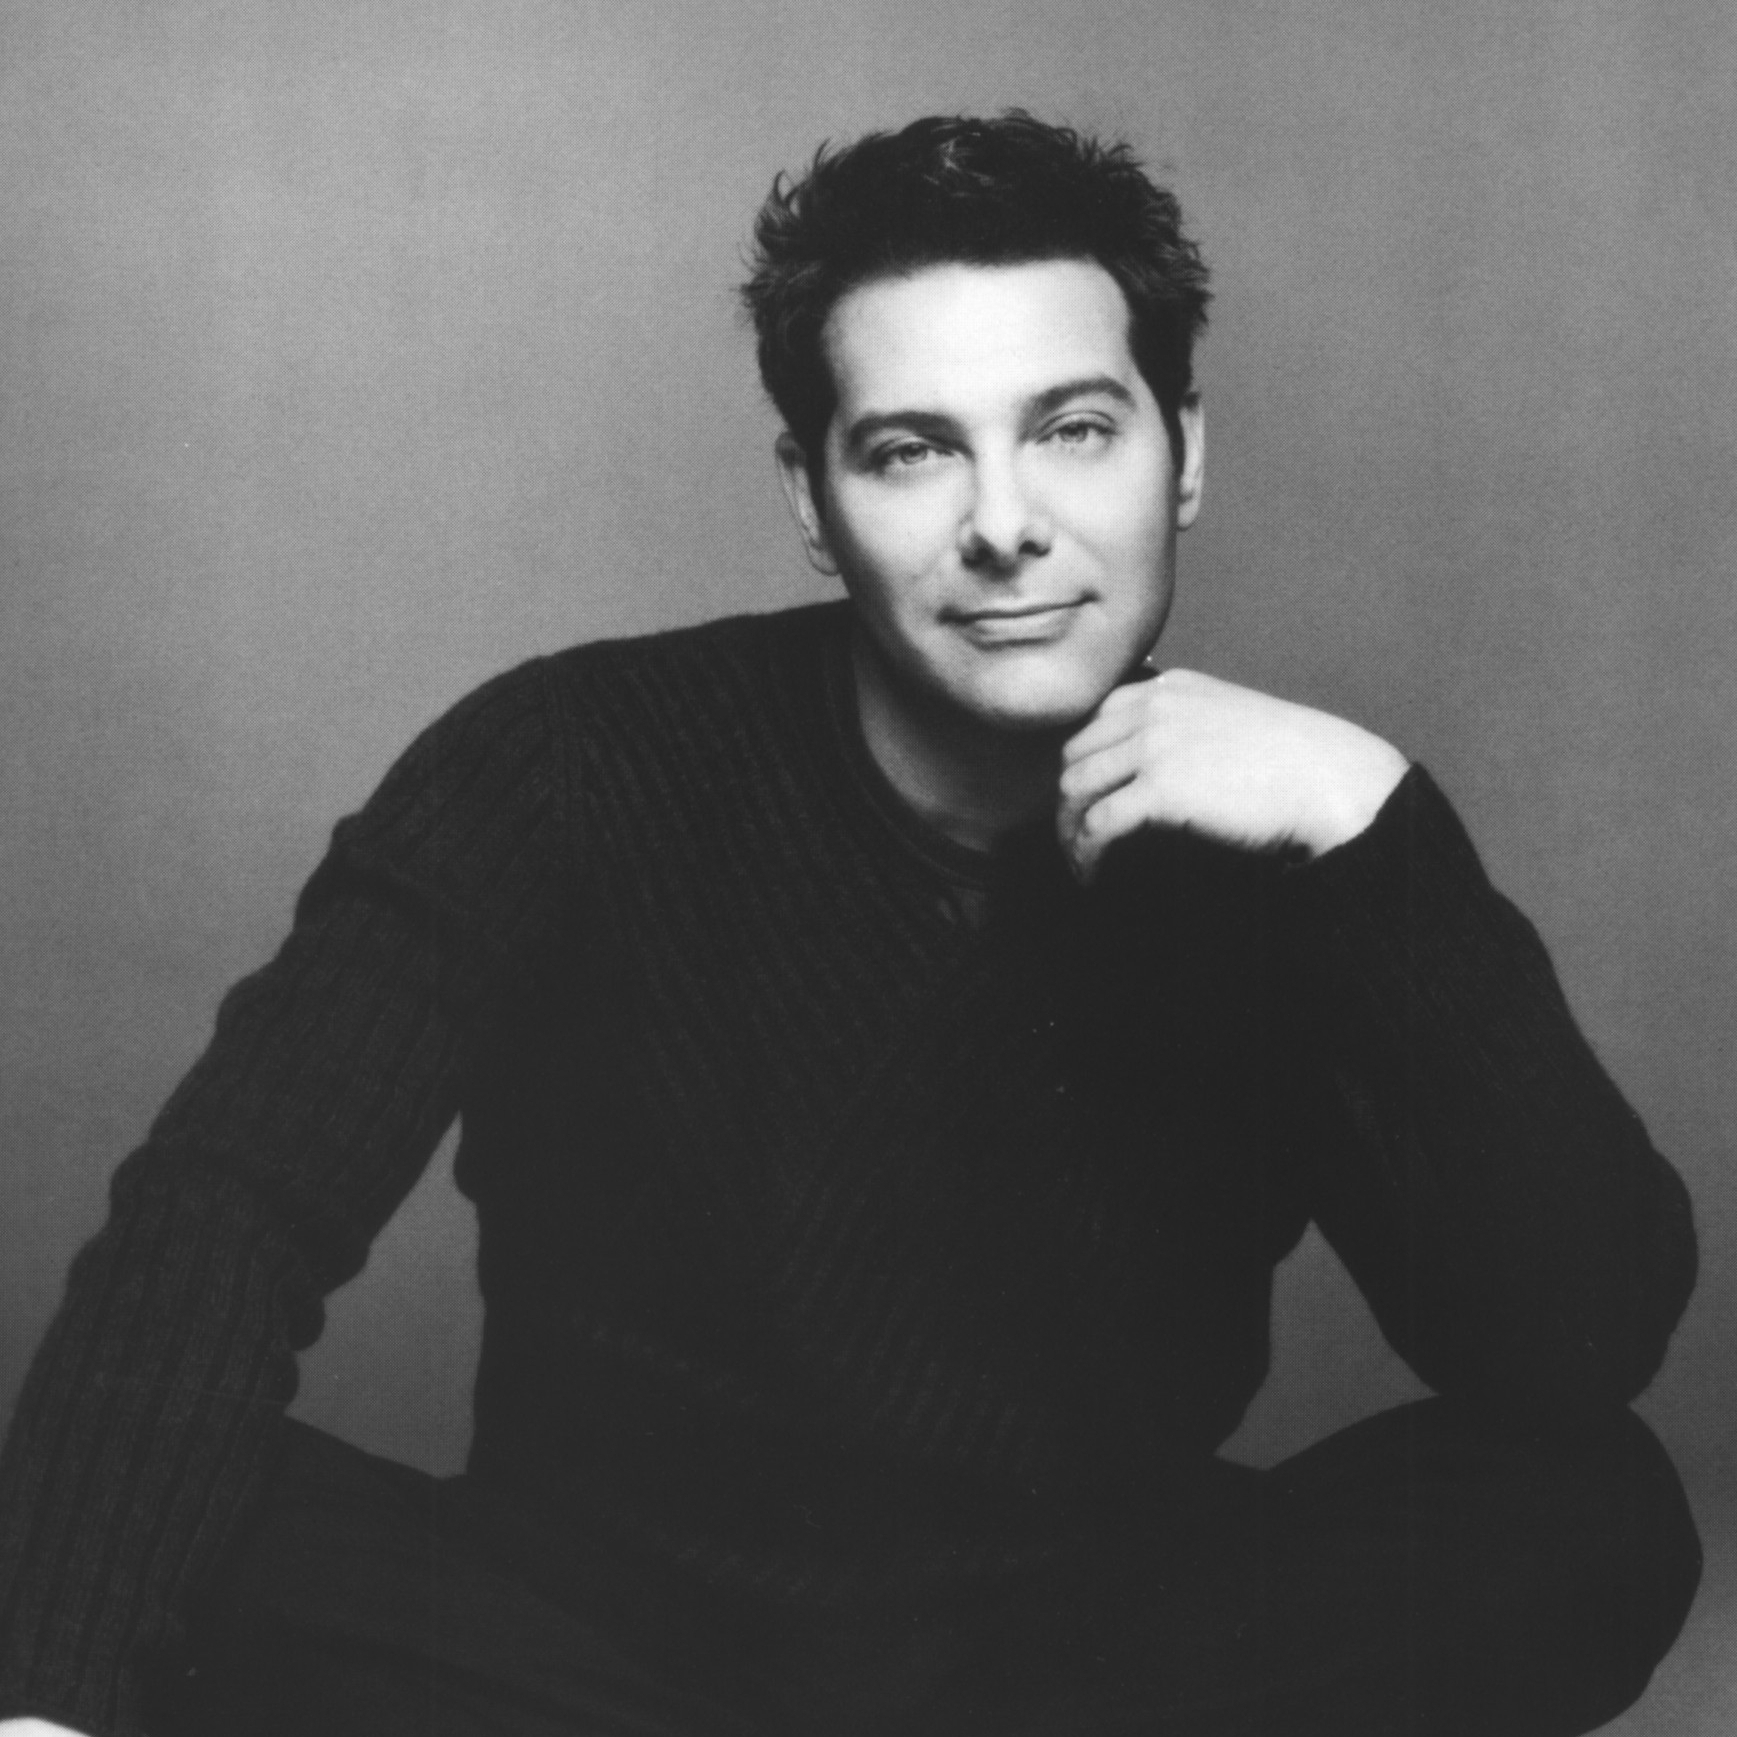 Michael Feinstein is an award-winning musician. He serves as the artistic director of the Palladium Center for the Performing Arts.